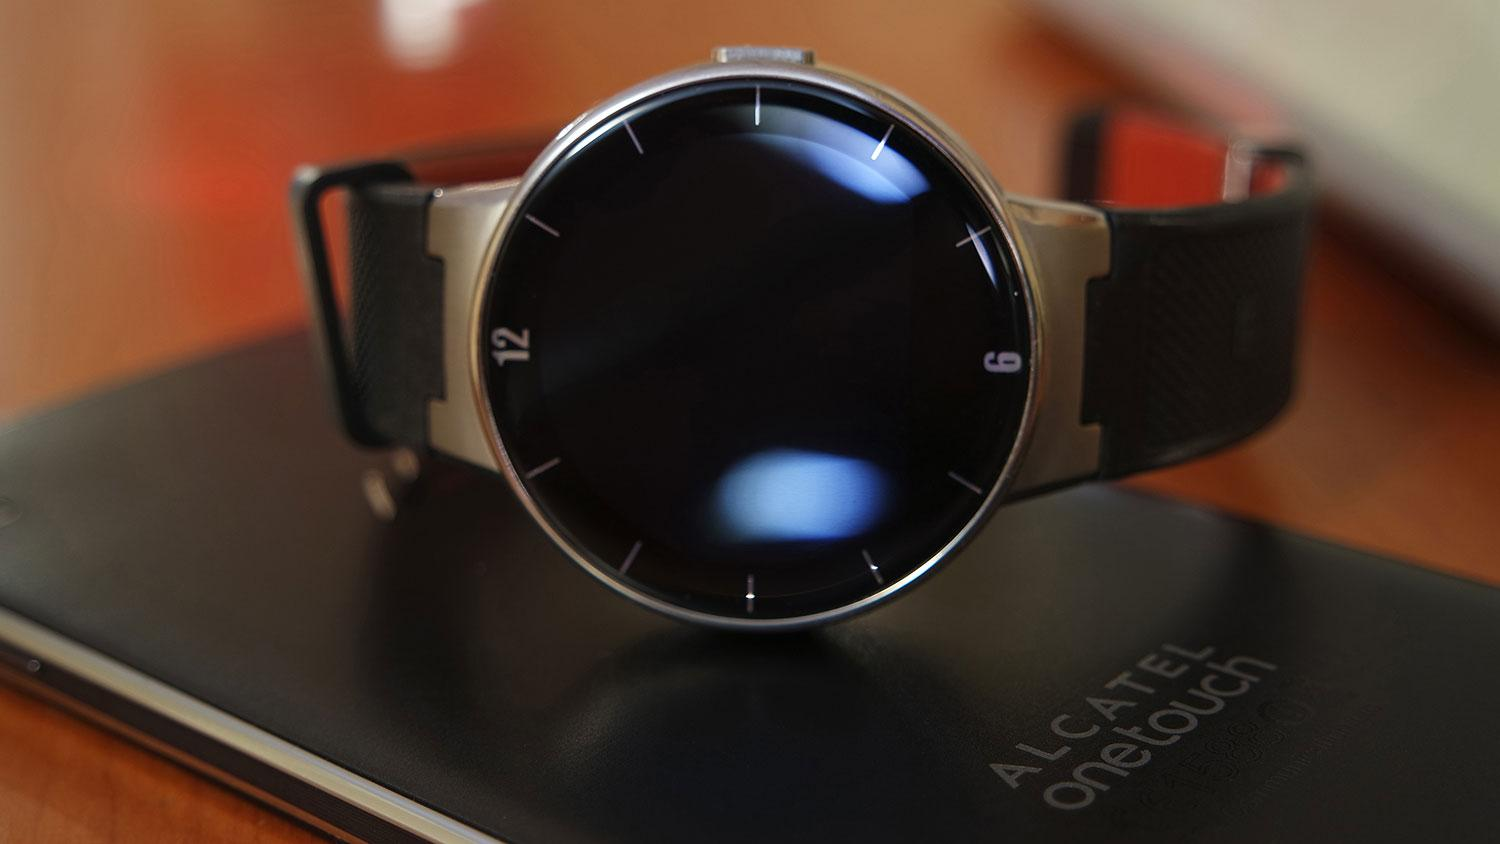 Alcatel Watch detalle de la esfera